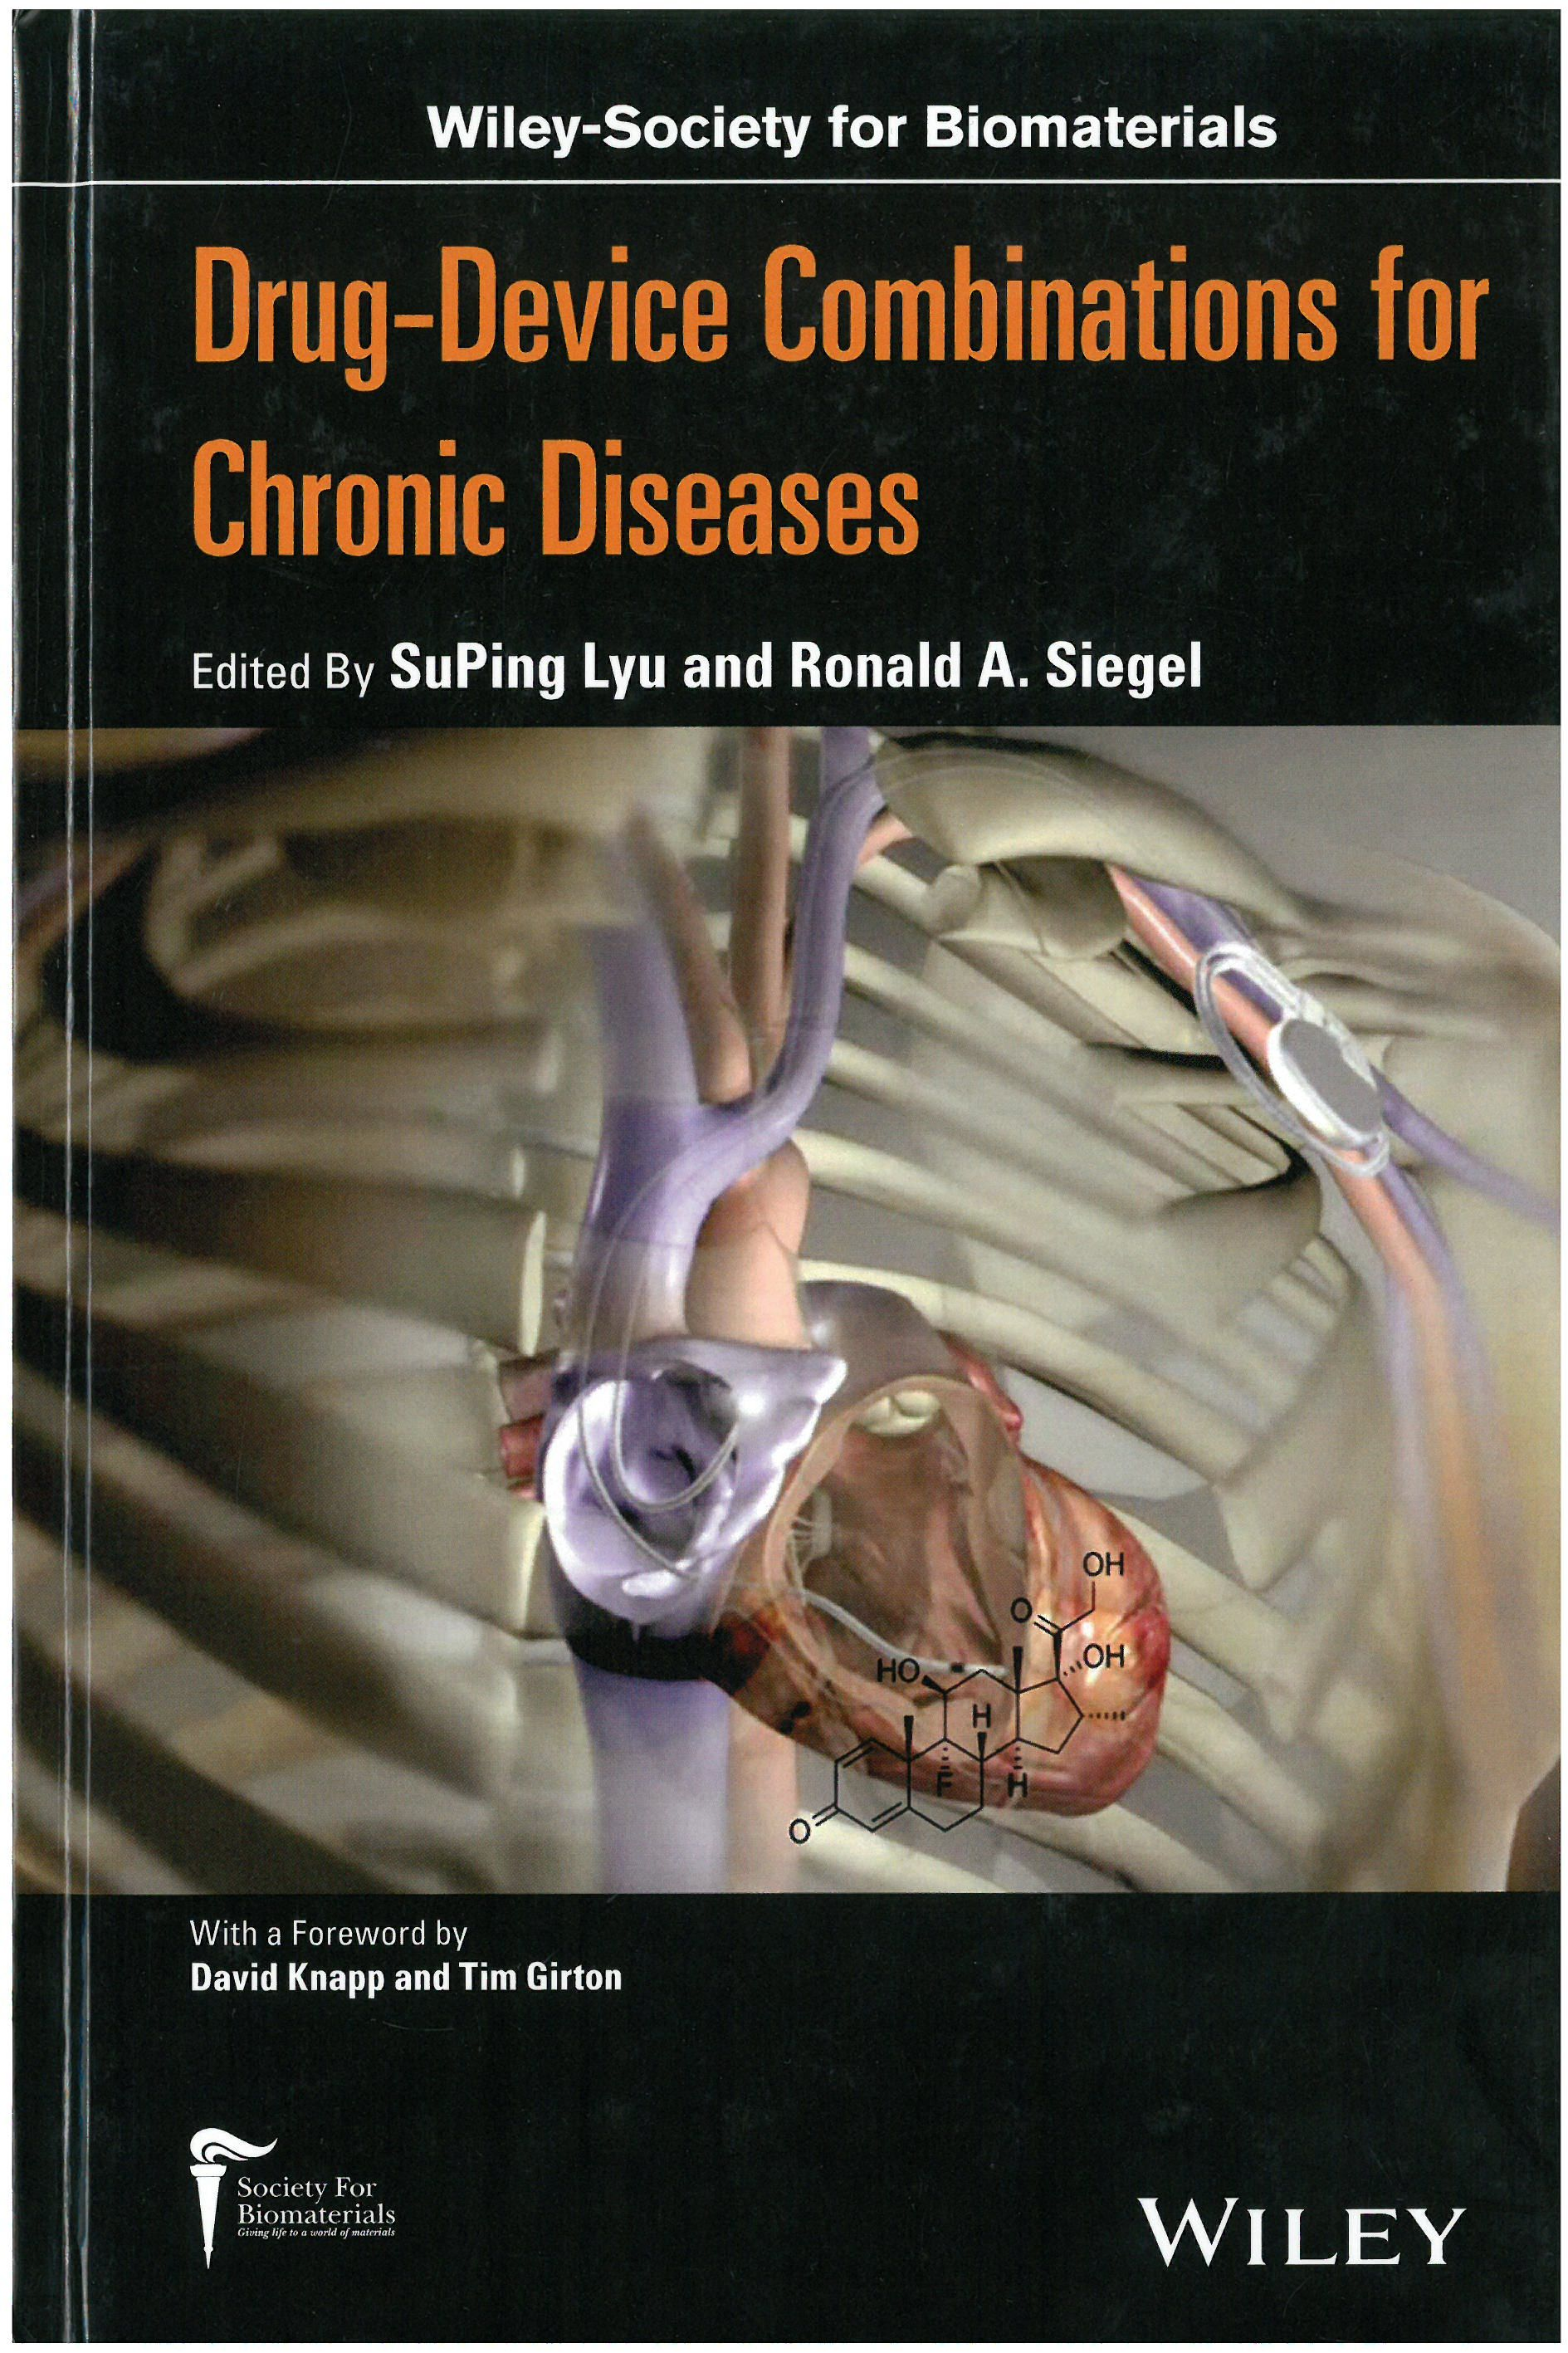 Drug-device combinations for chronic diseases / edited by Ronald Siegel, SuPing Lyu ; [with a foreword by David Knapp and Tim Girton. 2016